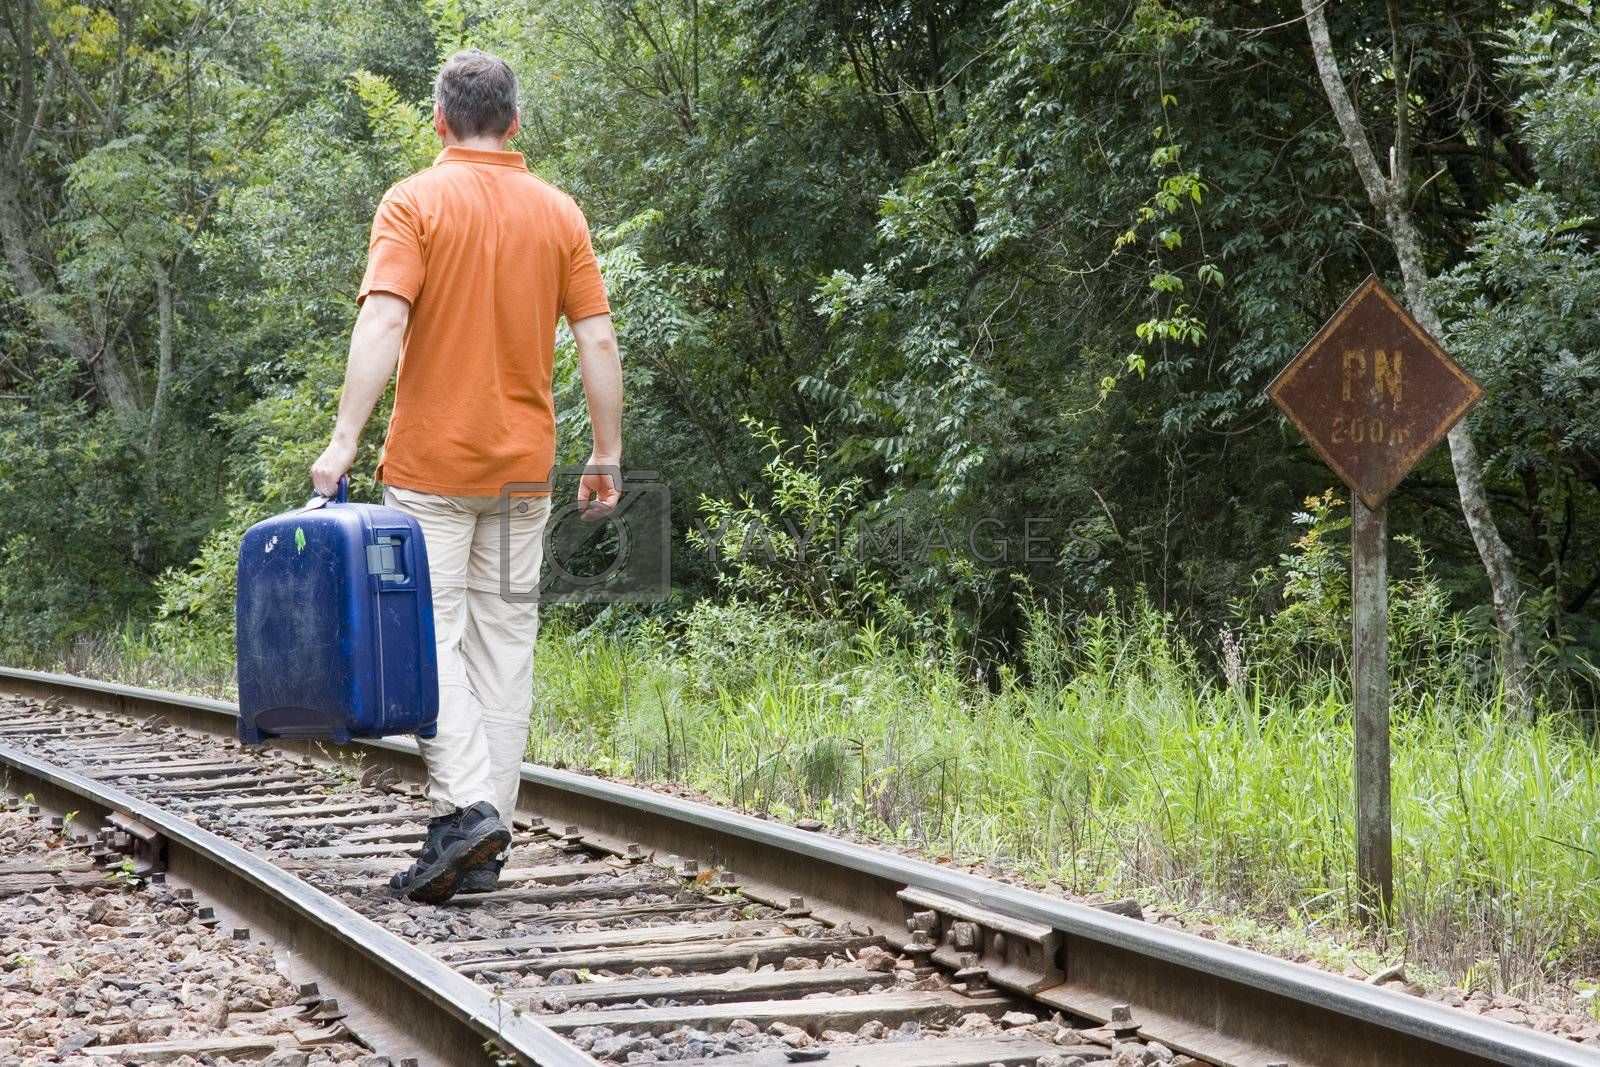 Man with suitcase walking on a railway in Brazil